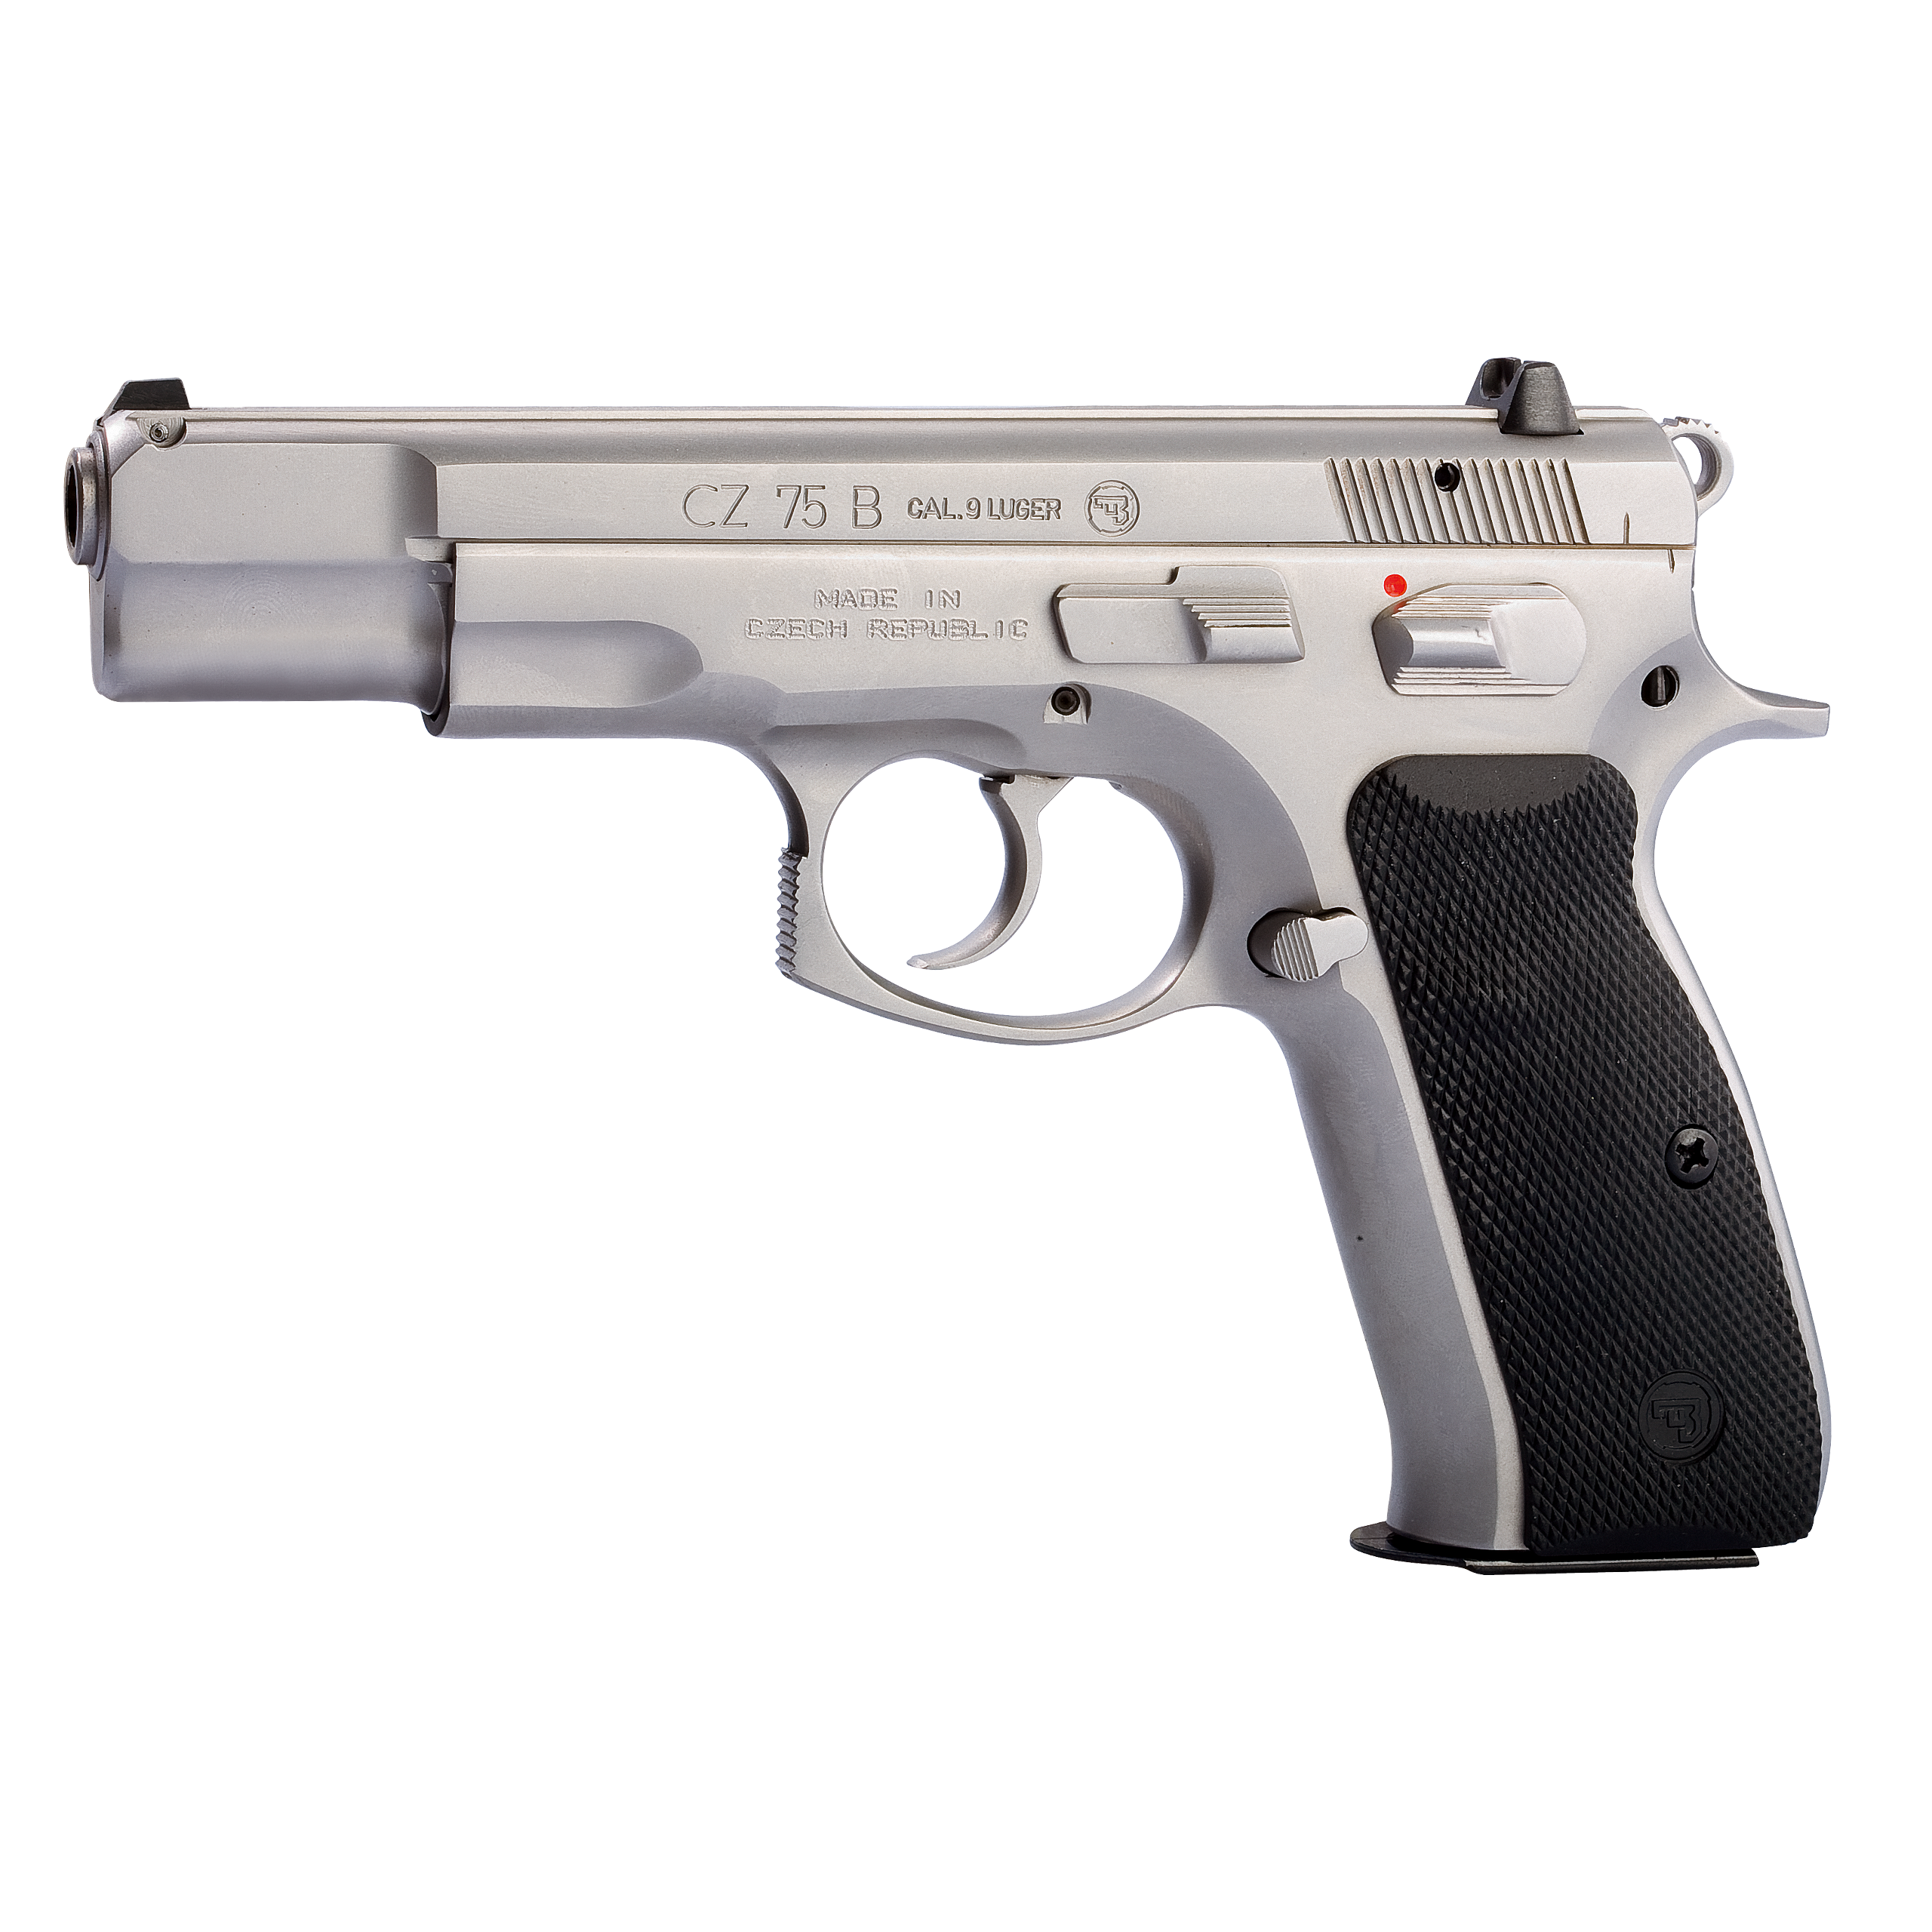 CZ 75 B STAINLESSLoading that magazine is a pain! Get your Magazine speedloader today! http://www.amazon.com/shops/raeind